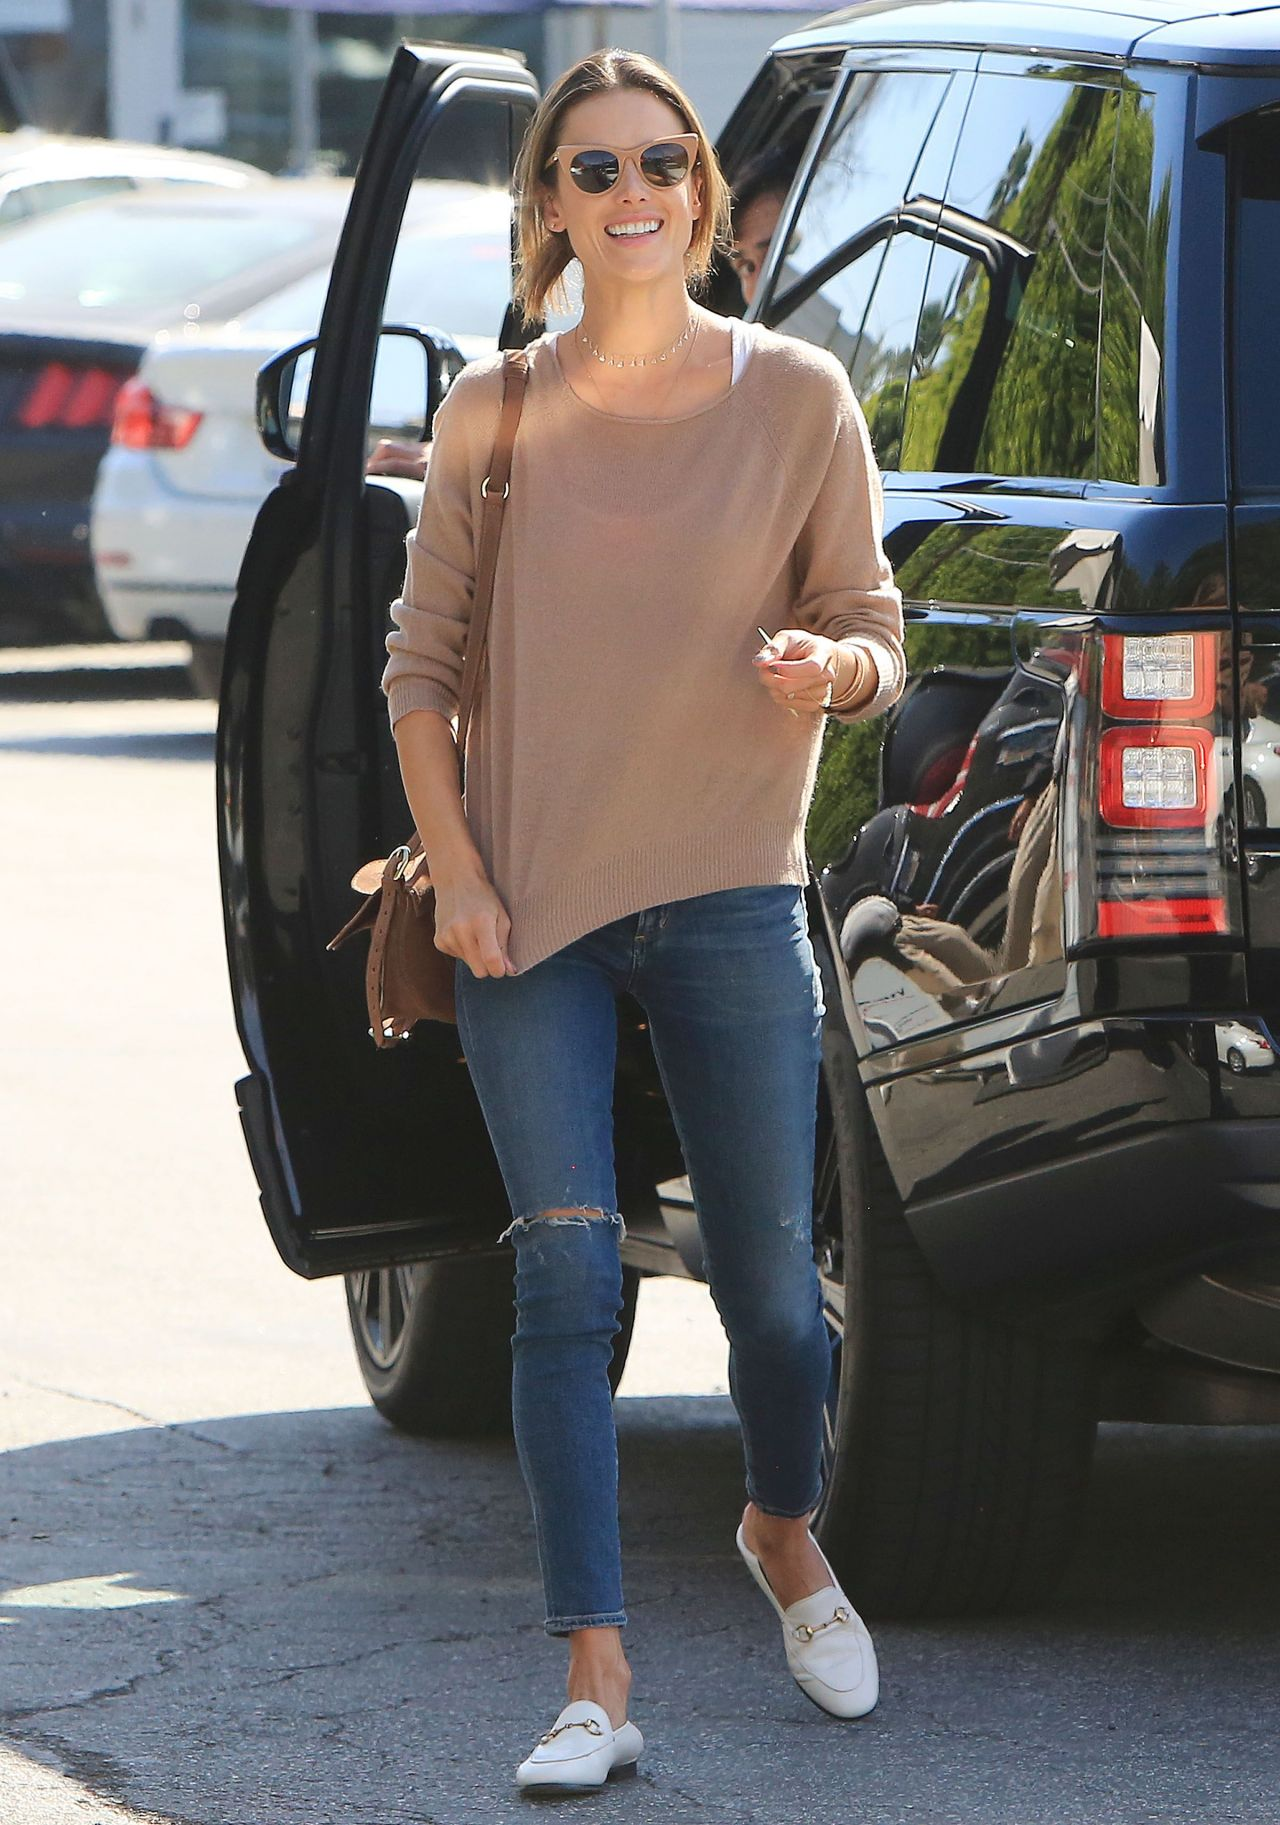 alessandra ambrosio street style out in la 02012018